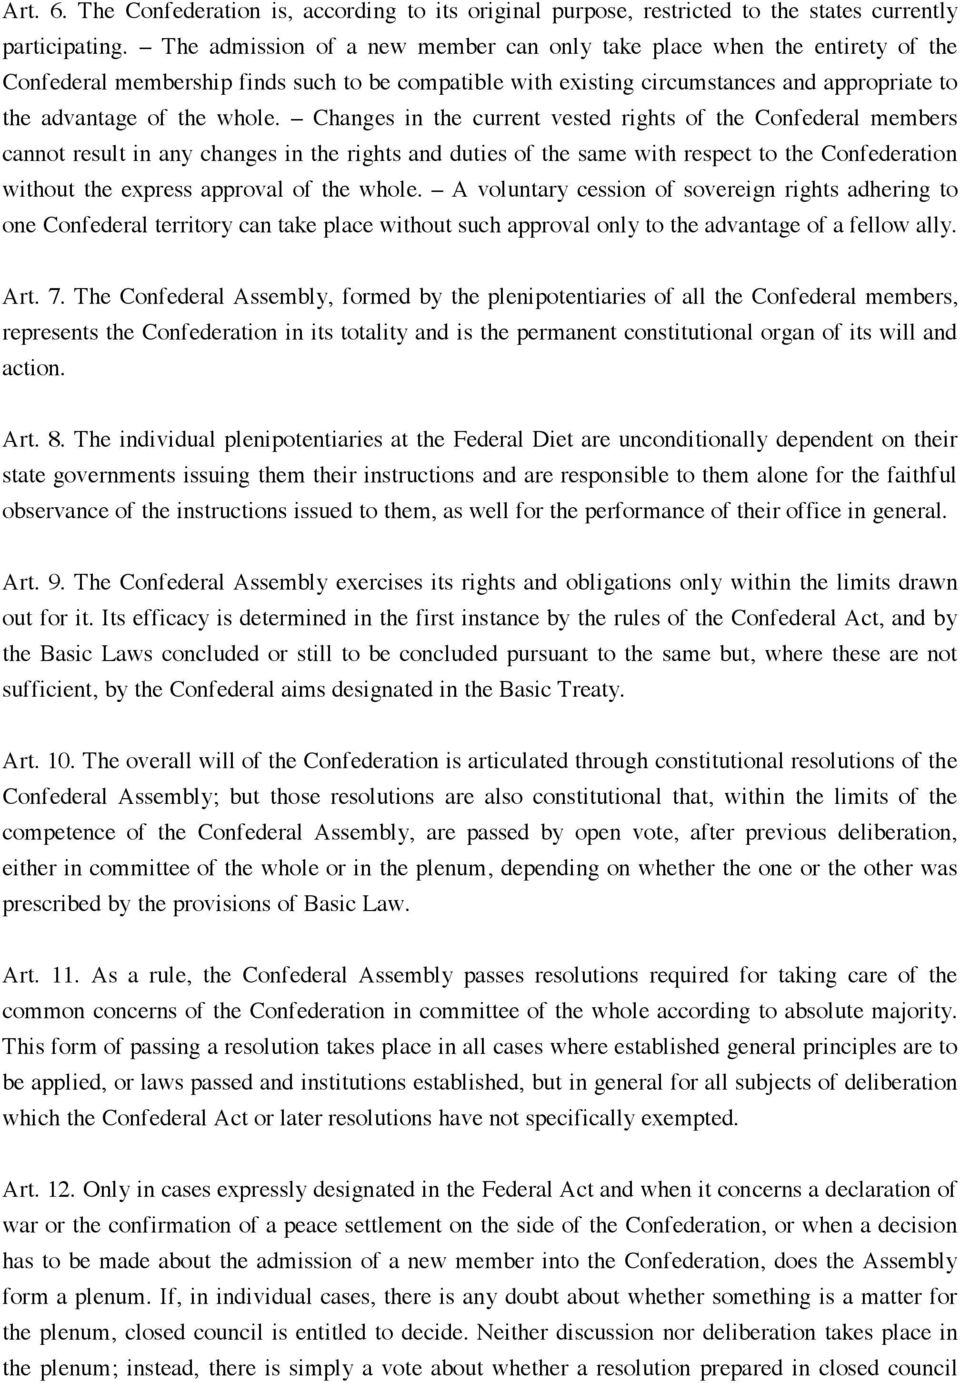 Changes in the current vested rights of the Confederal members cannot result in any changes in the rights and duties of the same with respect to the Confederation without the express approval of the